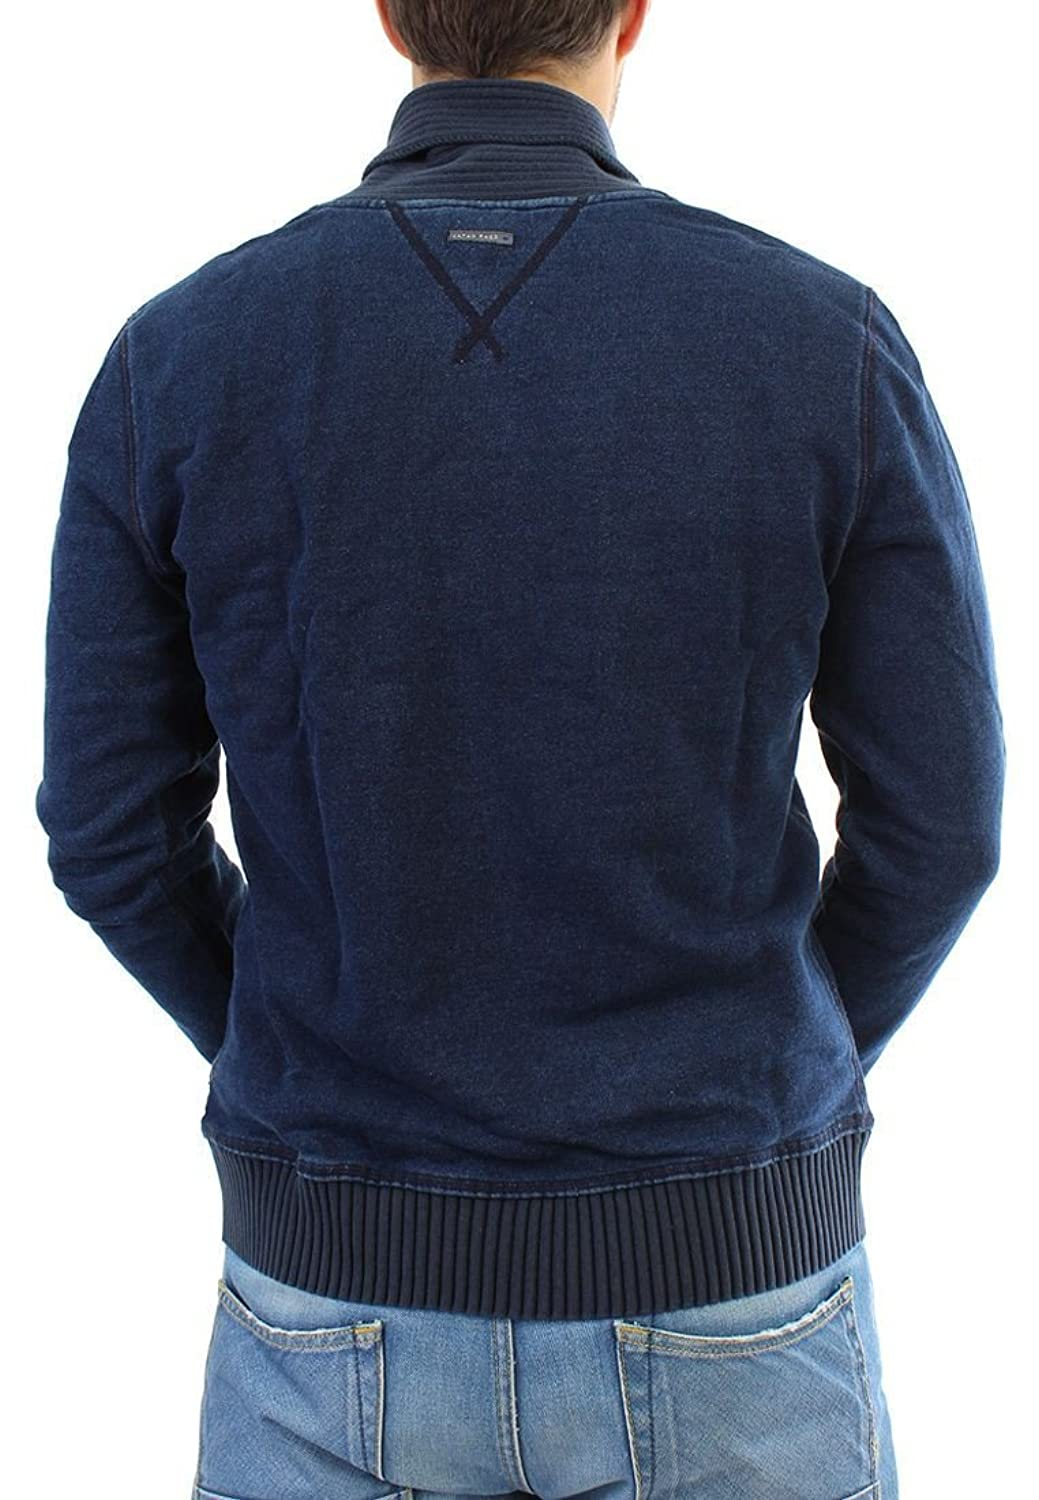 Japan Rags?-?Aditi Jumper?-?Indigo